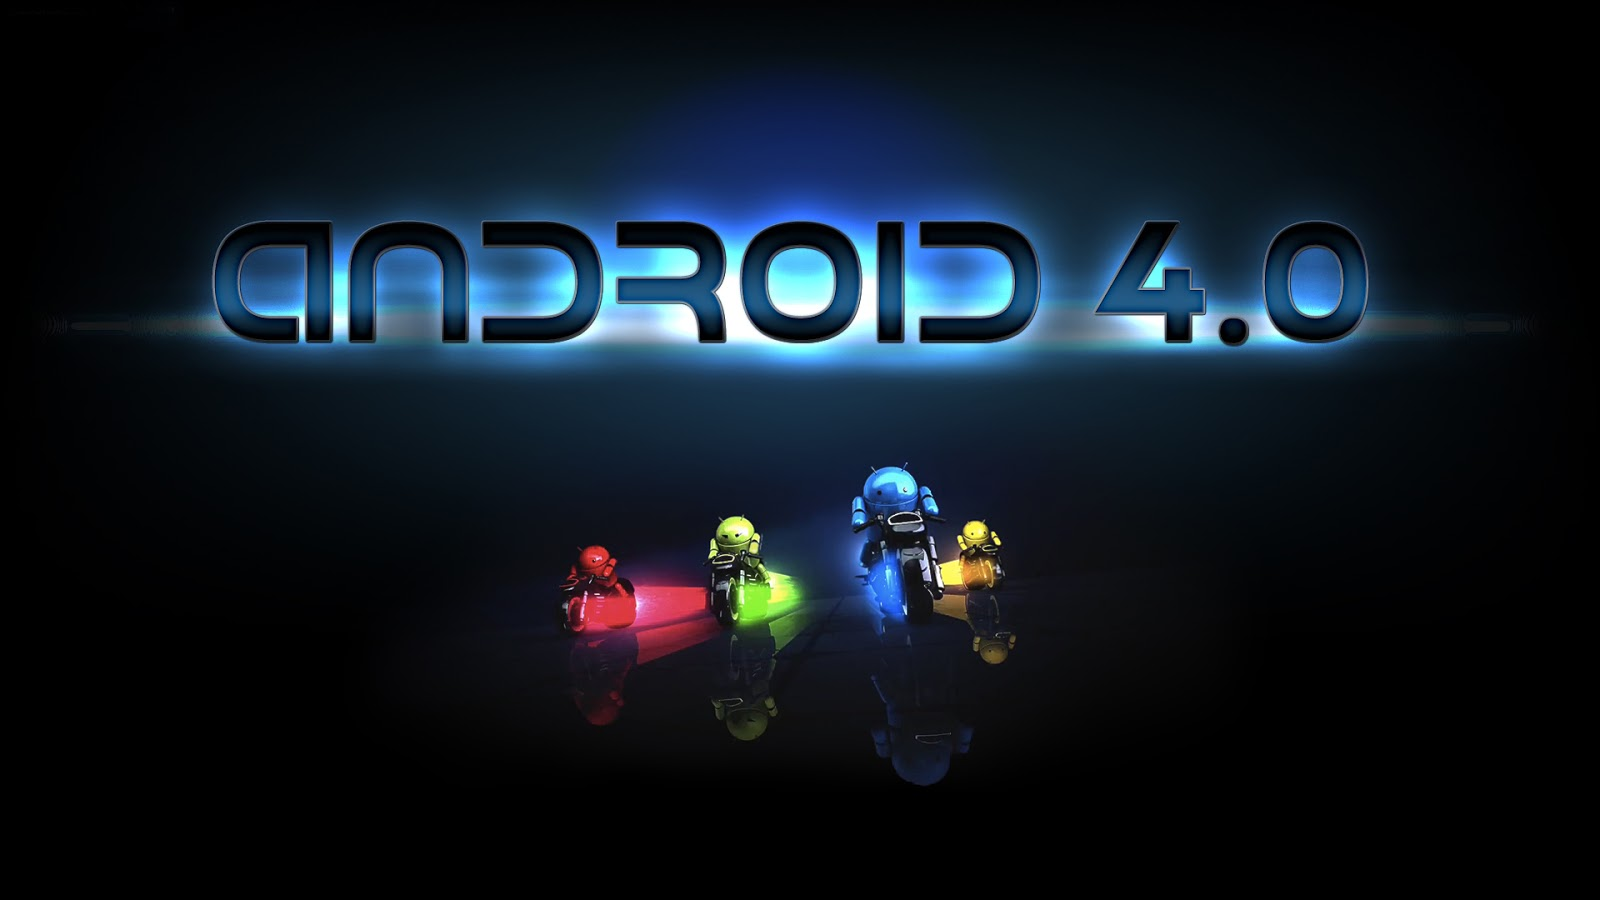 Free Android 4.0 Wallpaper Theme in HD